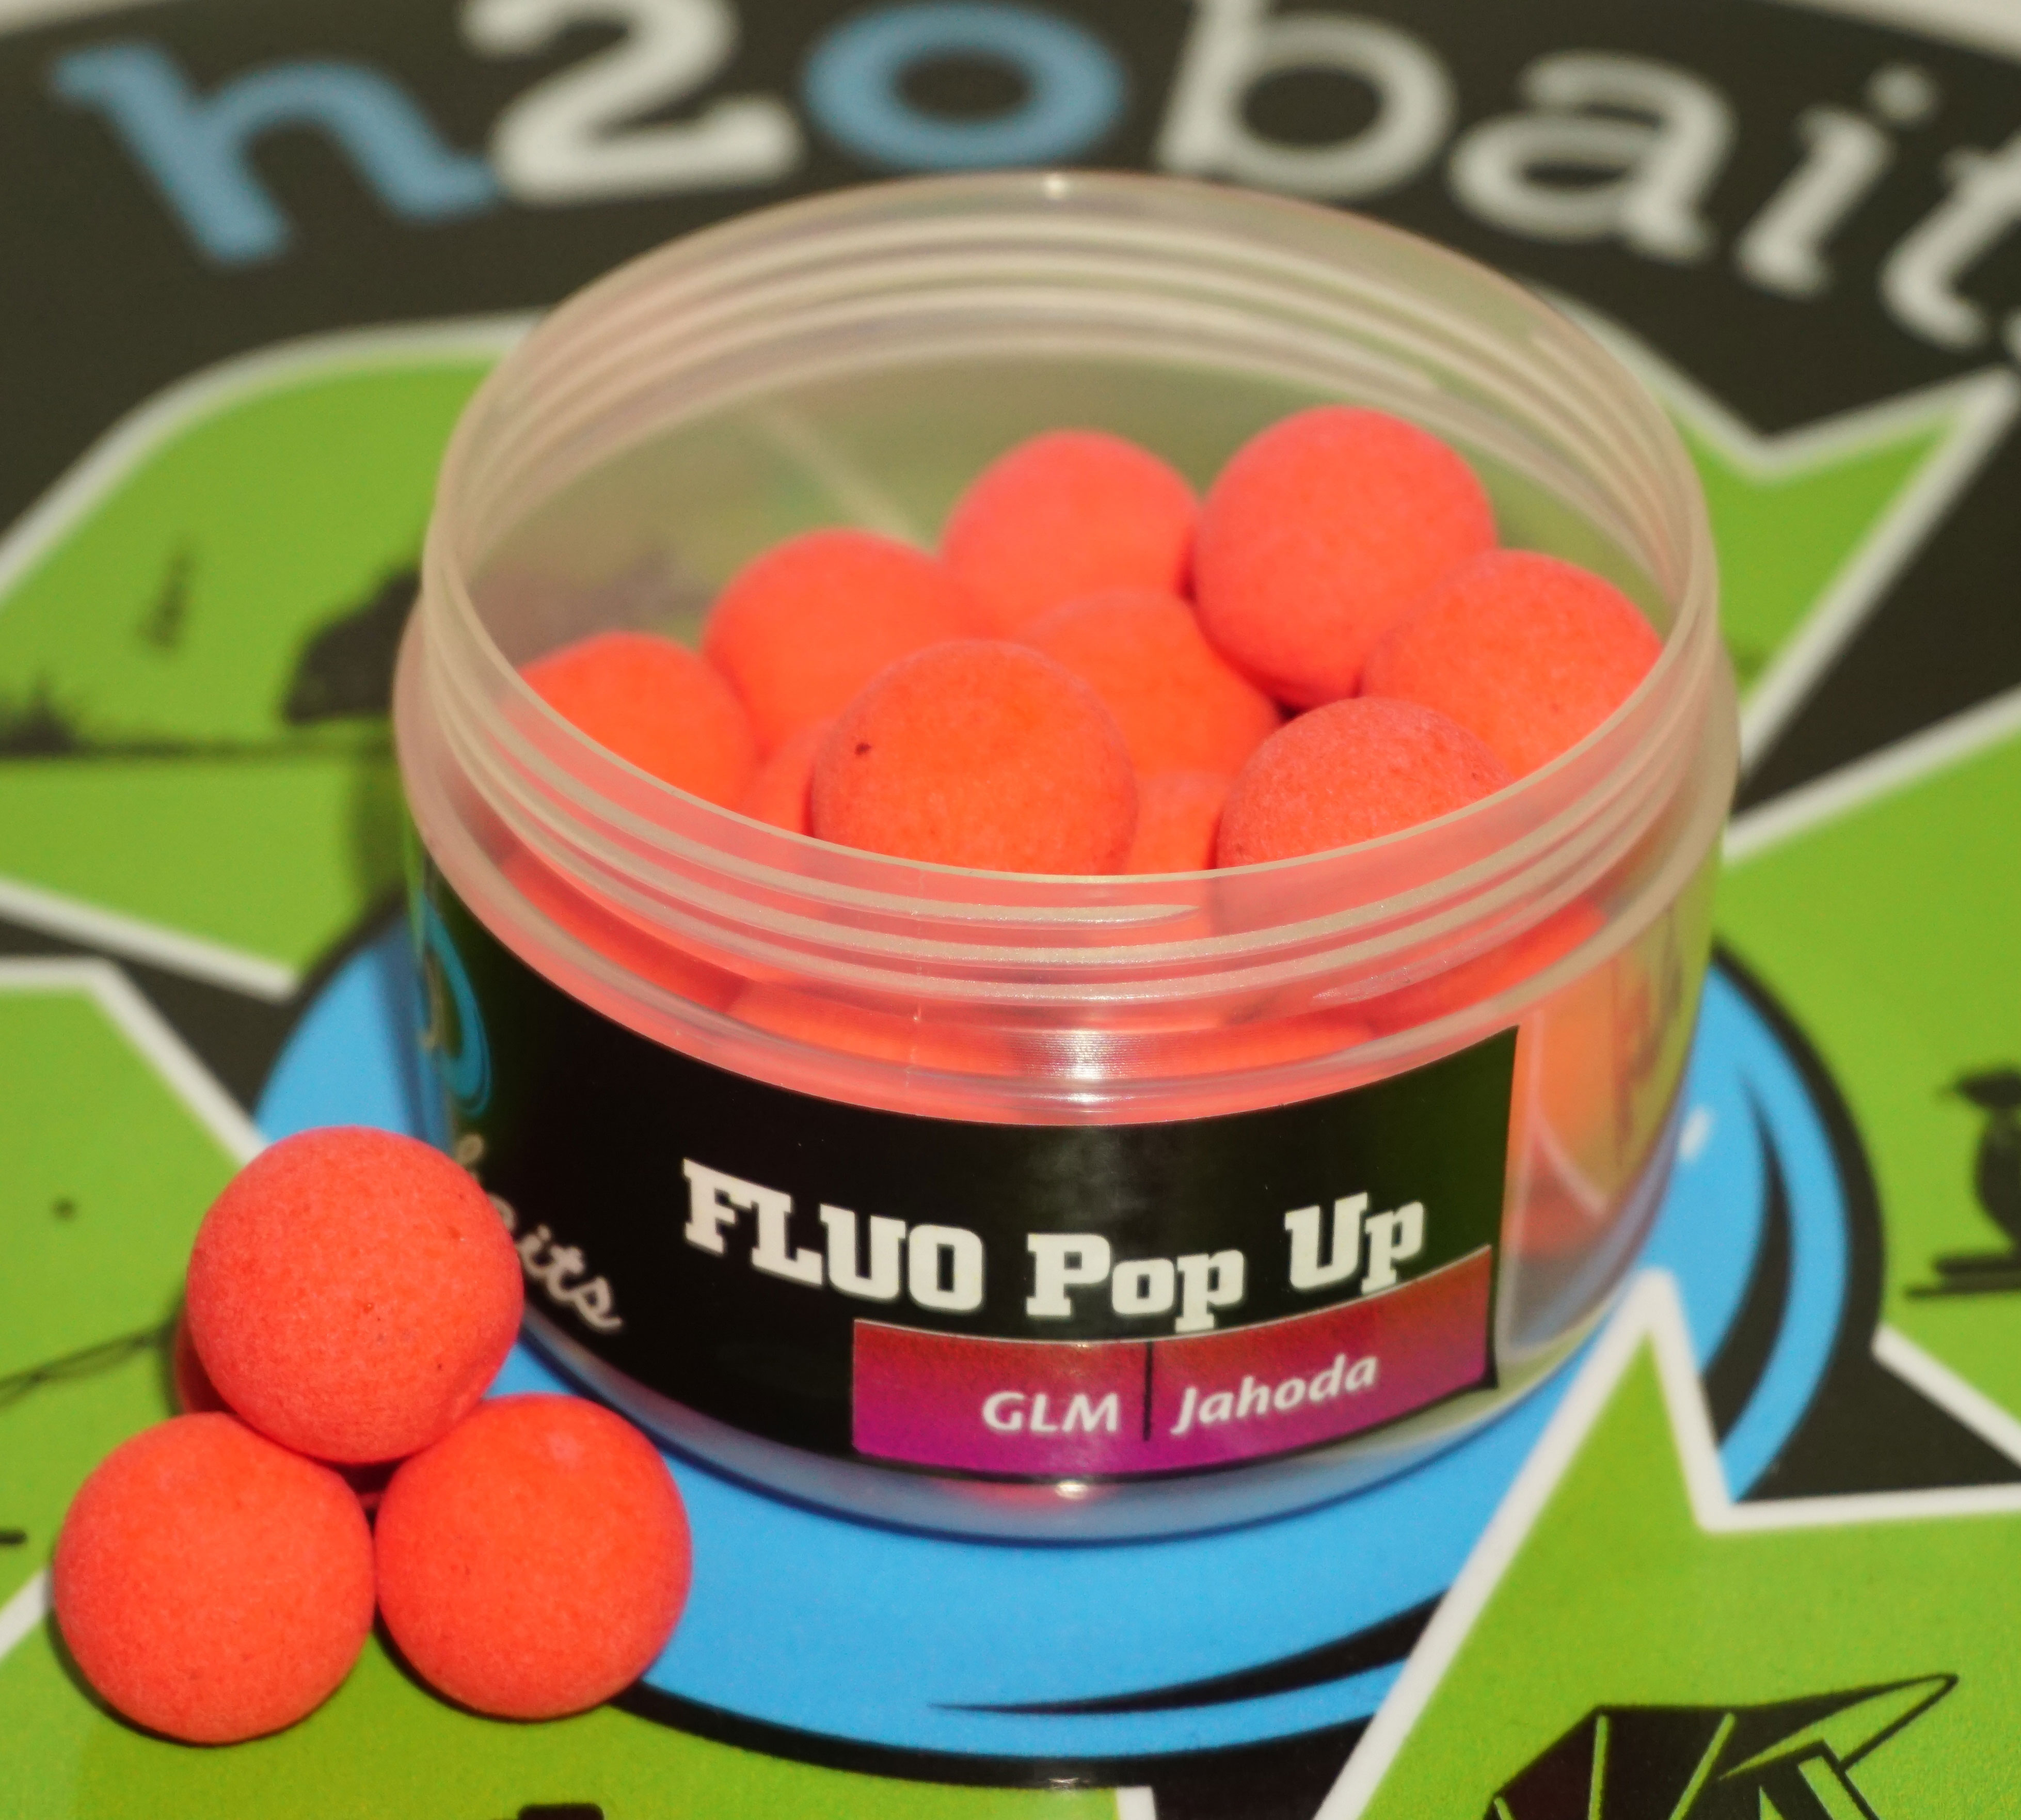 POP UP GLM/jahoda 150ml 15mm